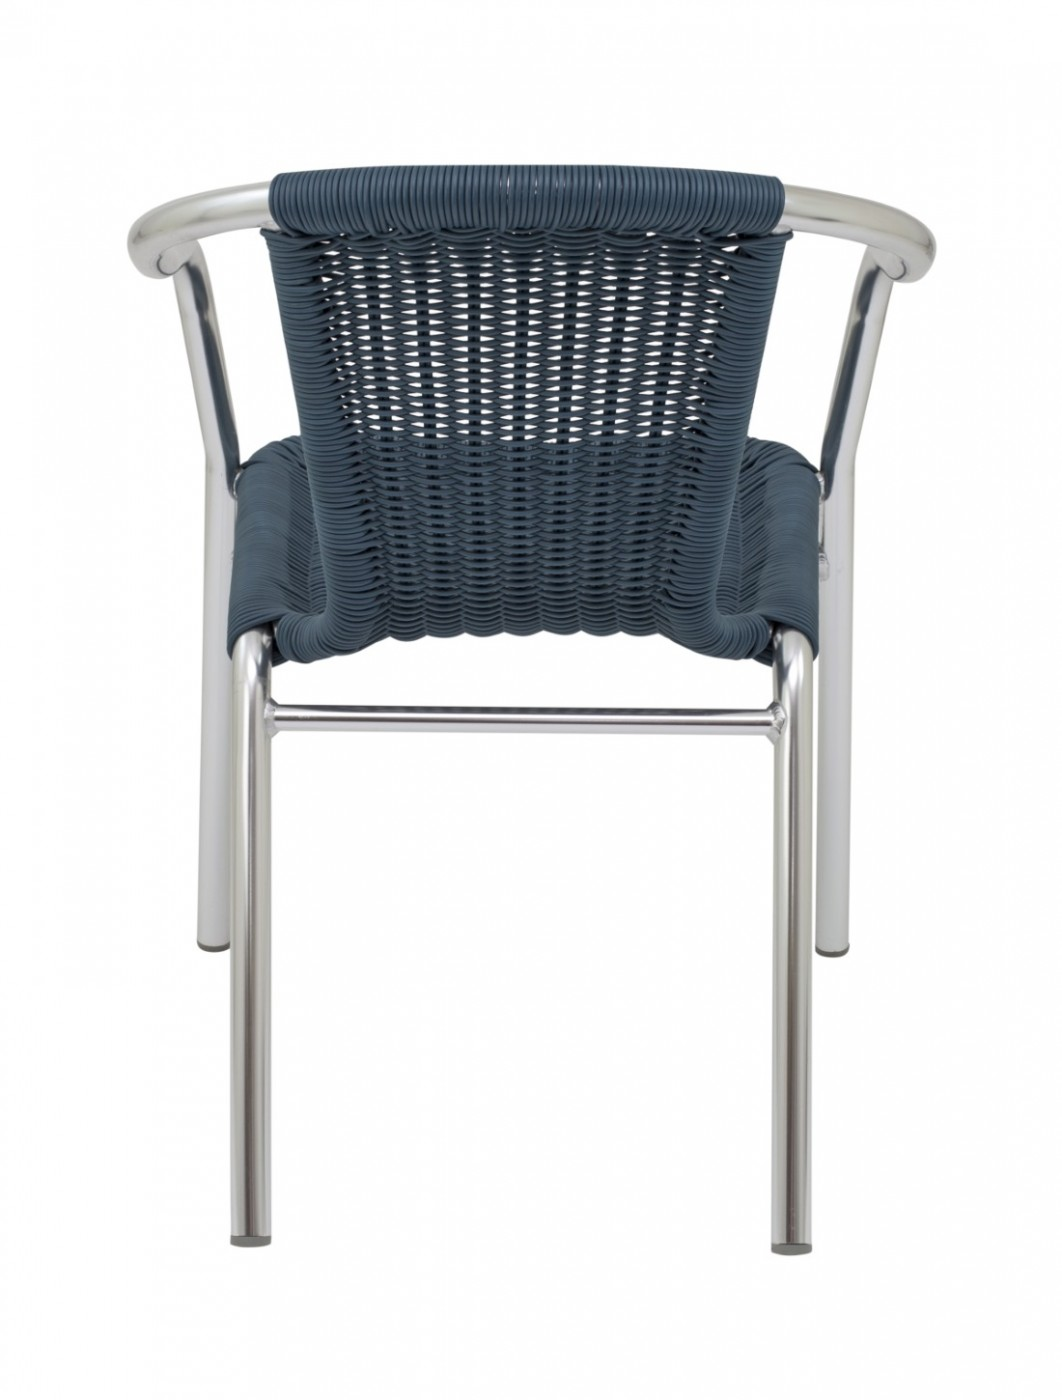 Bistro Chairs - TC Plaza Wicker Chair CH0660 - Blue or Natural Wicker